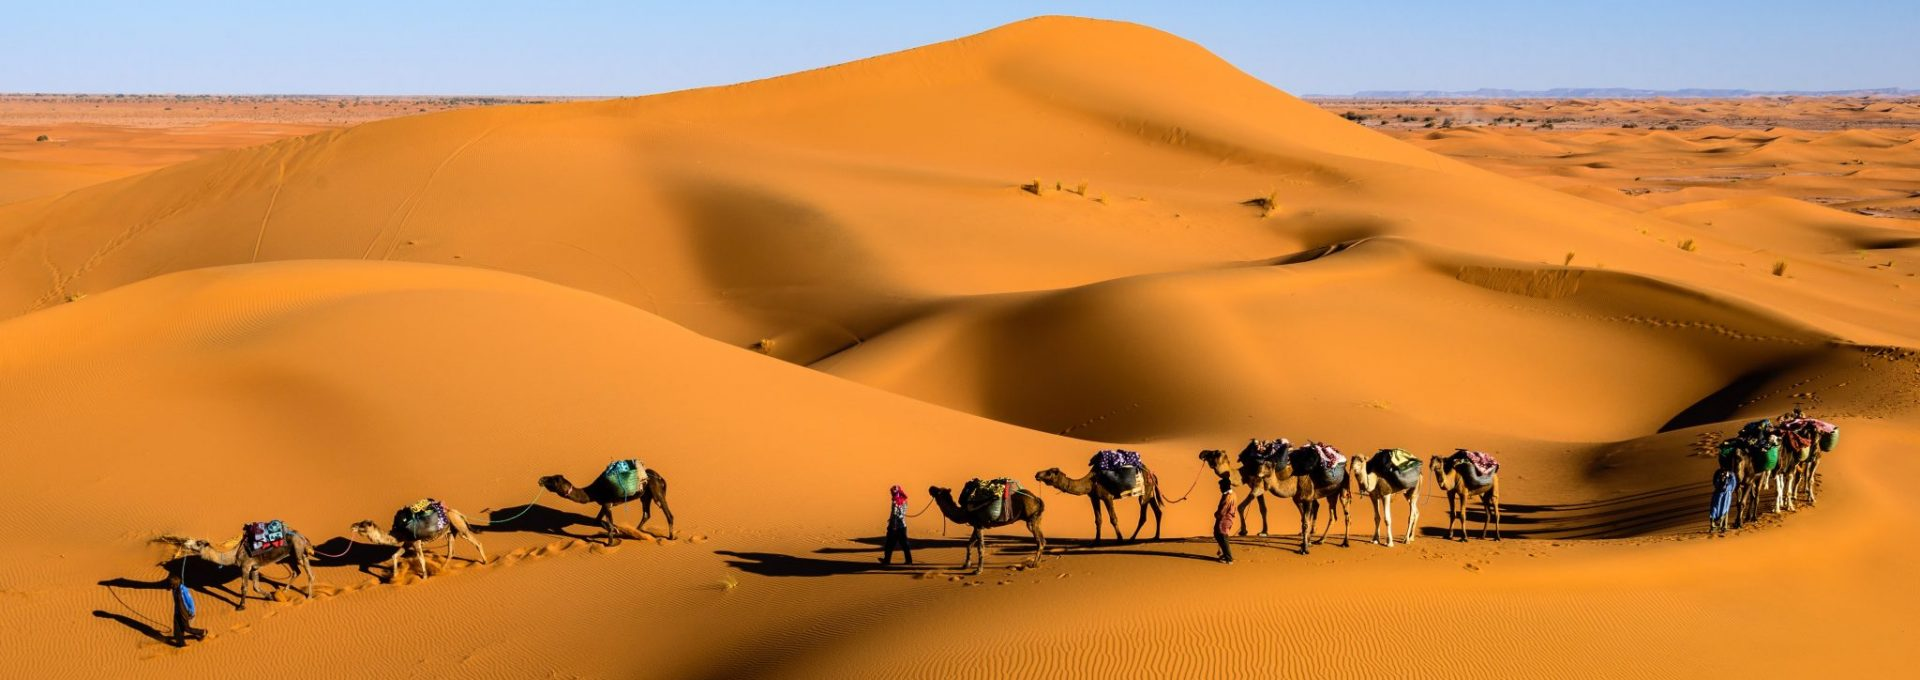 Roaming Camels Morocco